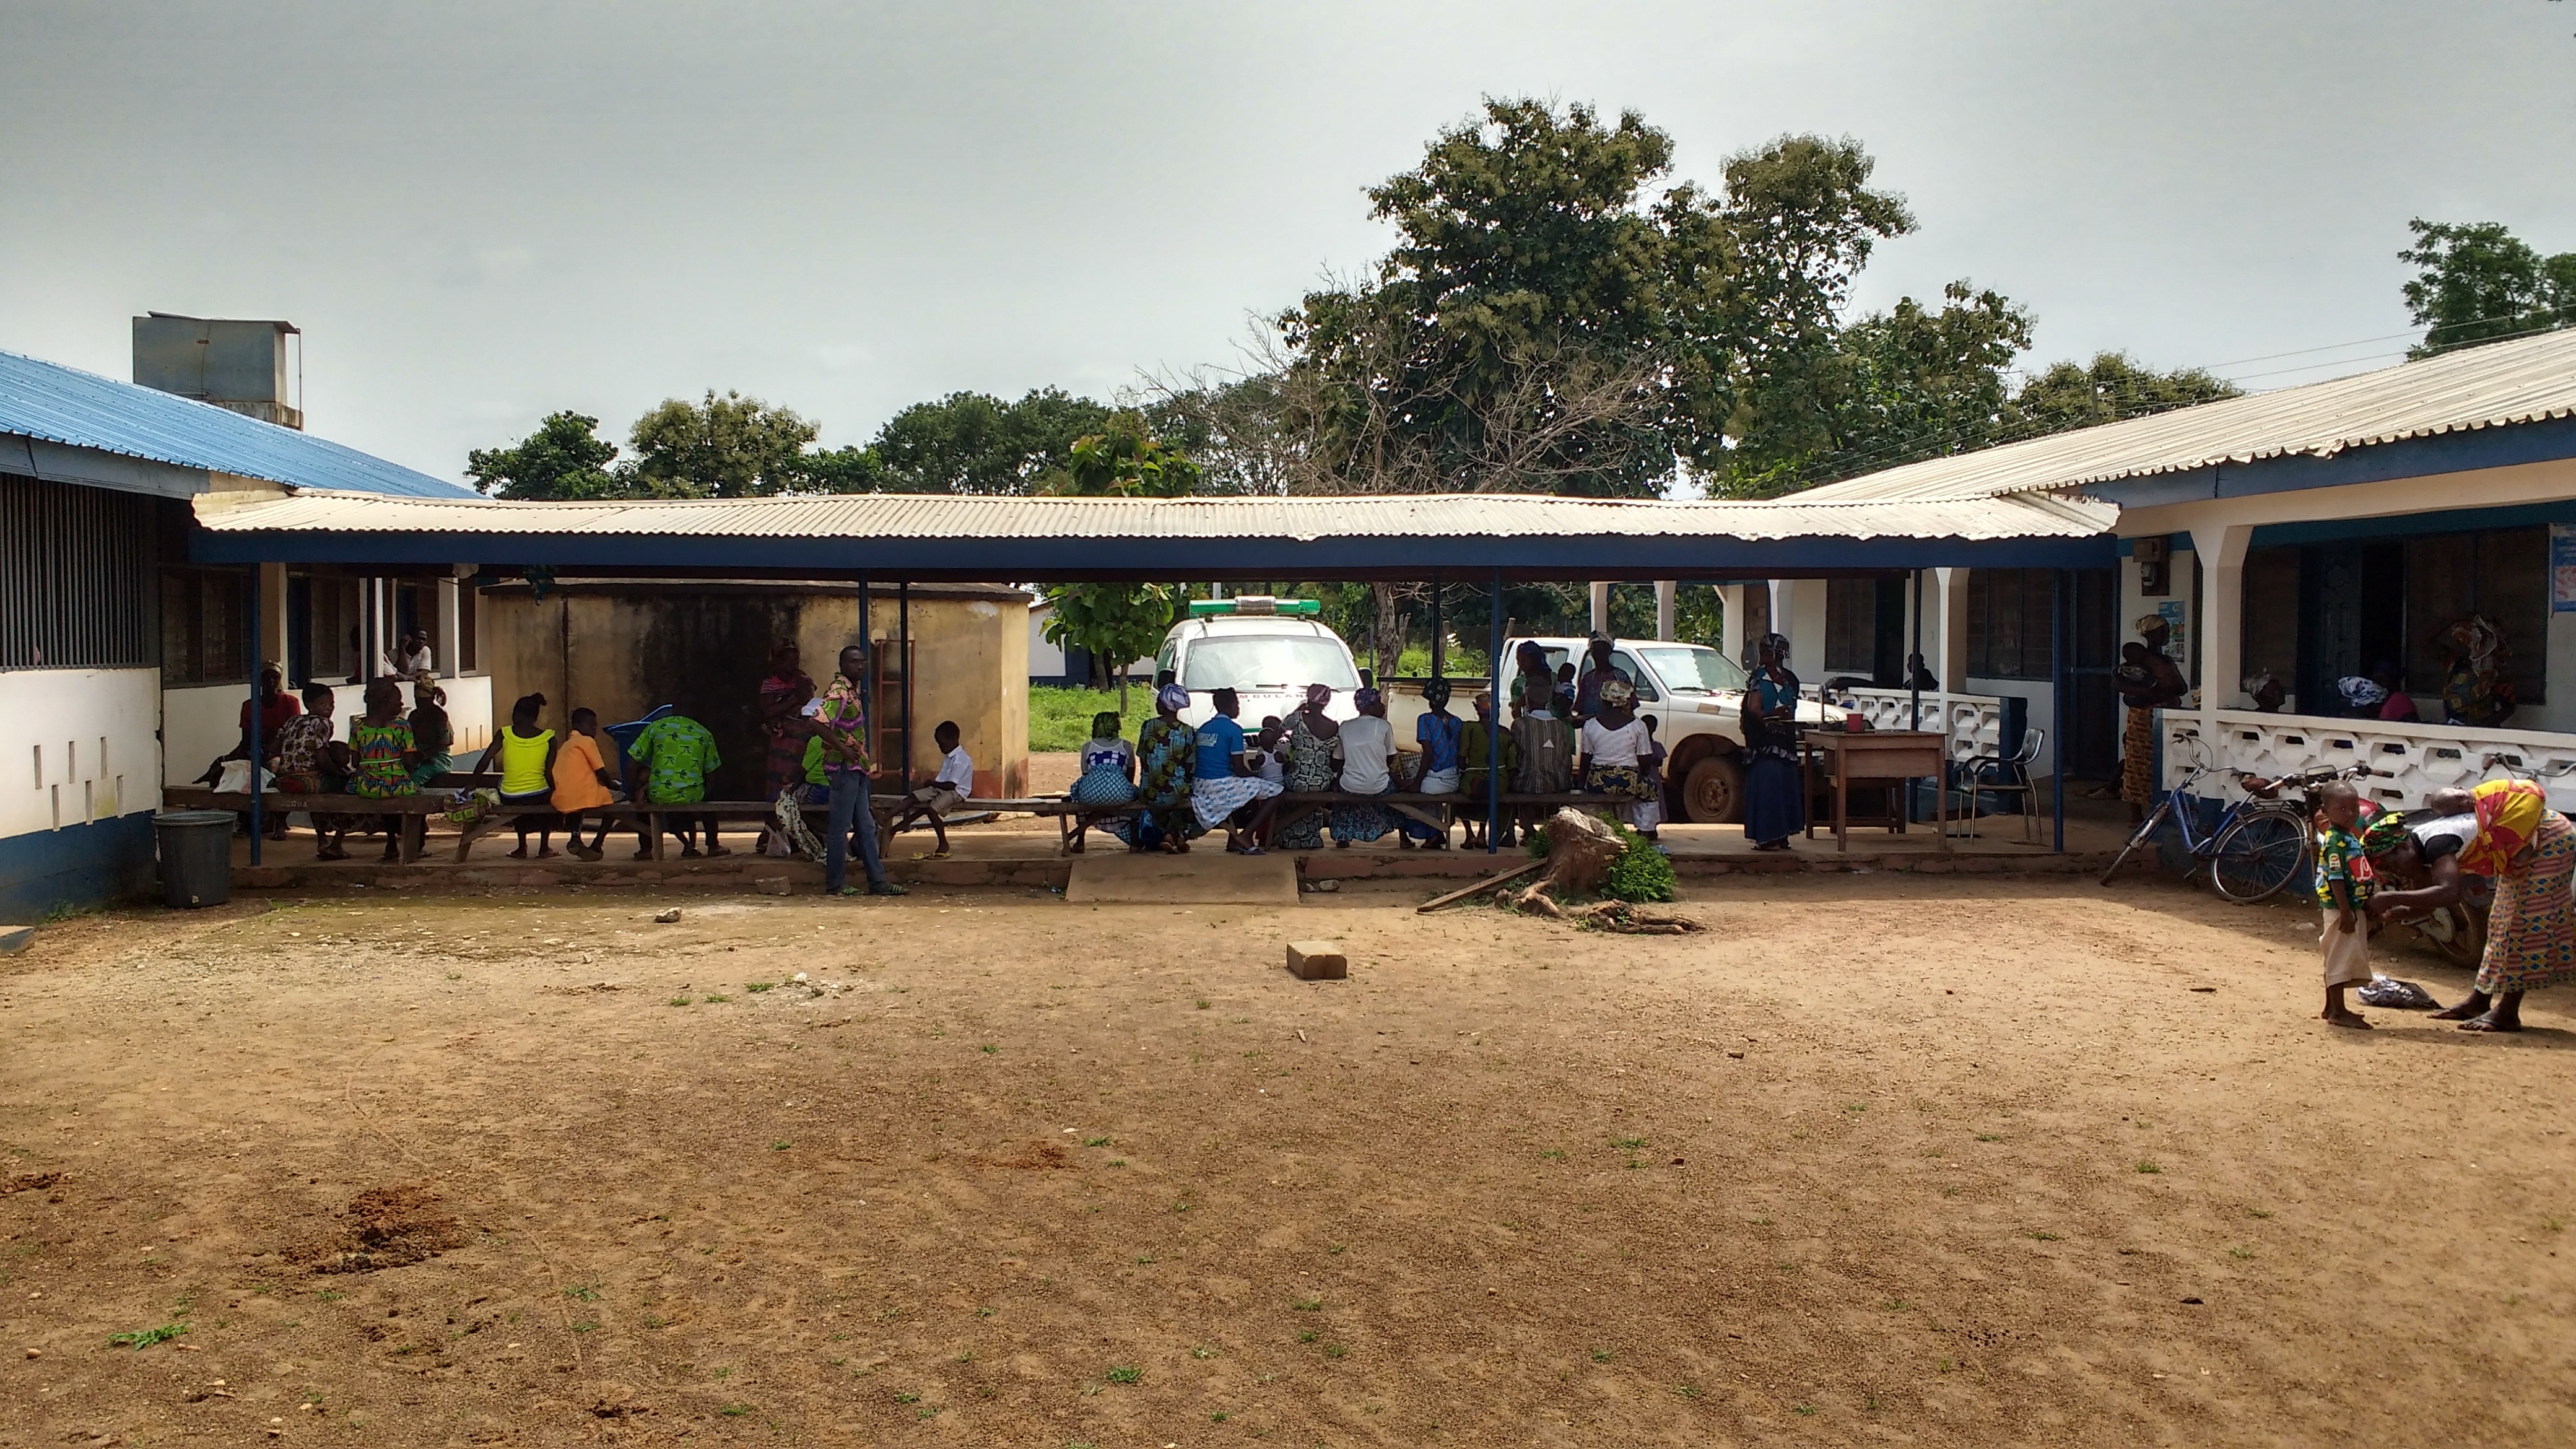 Patients waiting to see medical personnel at the Wapuli Health Clinic in Ghana. Lake Erie Presbytery is helping Wapuli renovate its facility so that it can provide more comprehensive health services in the rural farming communities of northeastern Ghana.